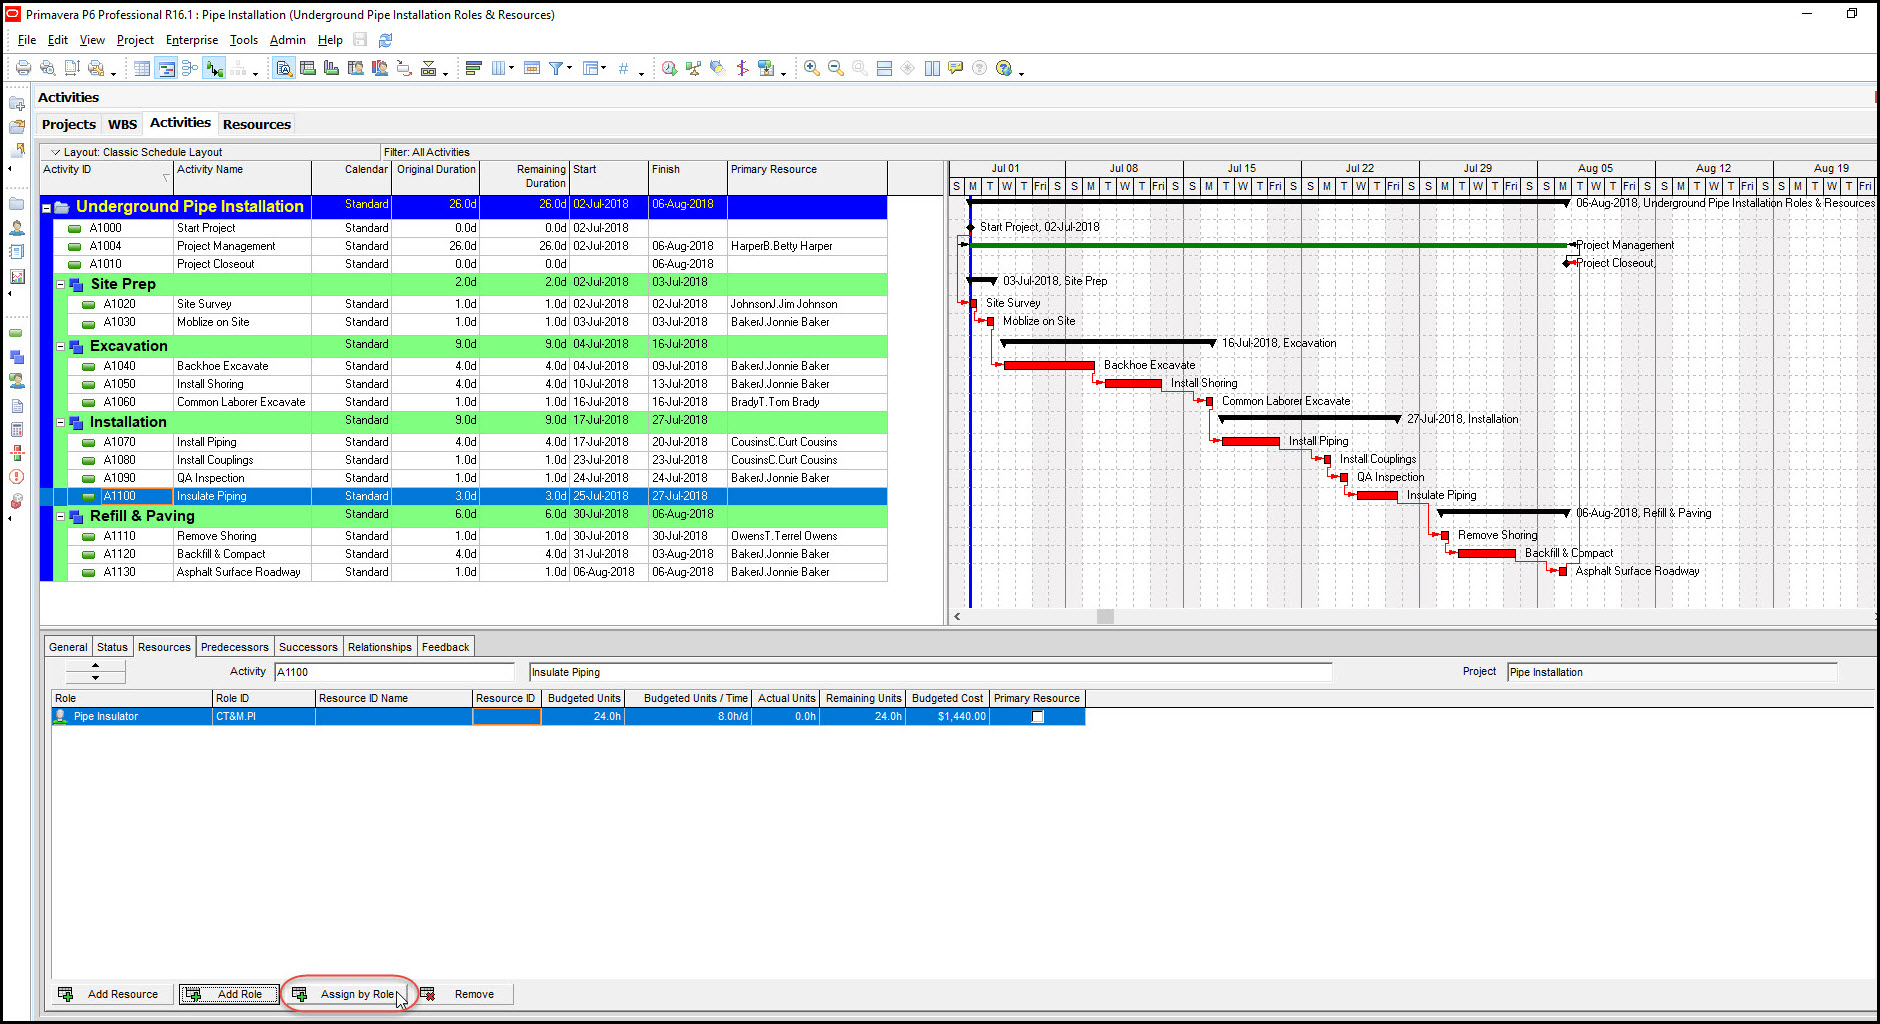 Assigning Multiple Roles To A Resource In Primavera P6 Fig 14